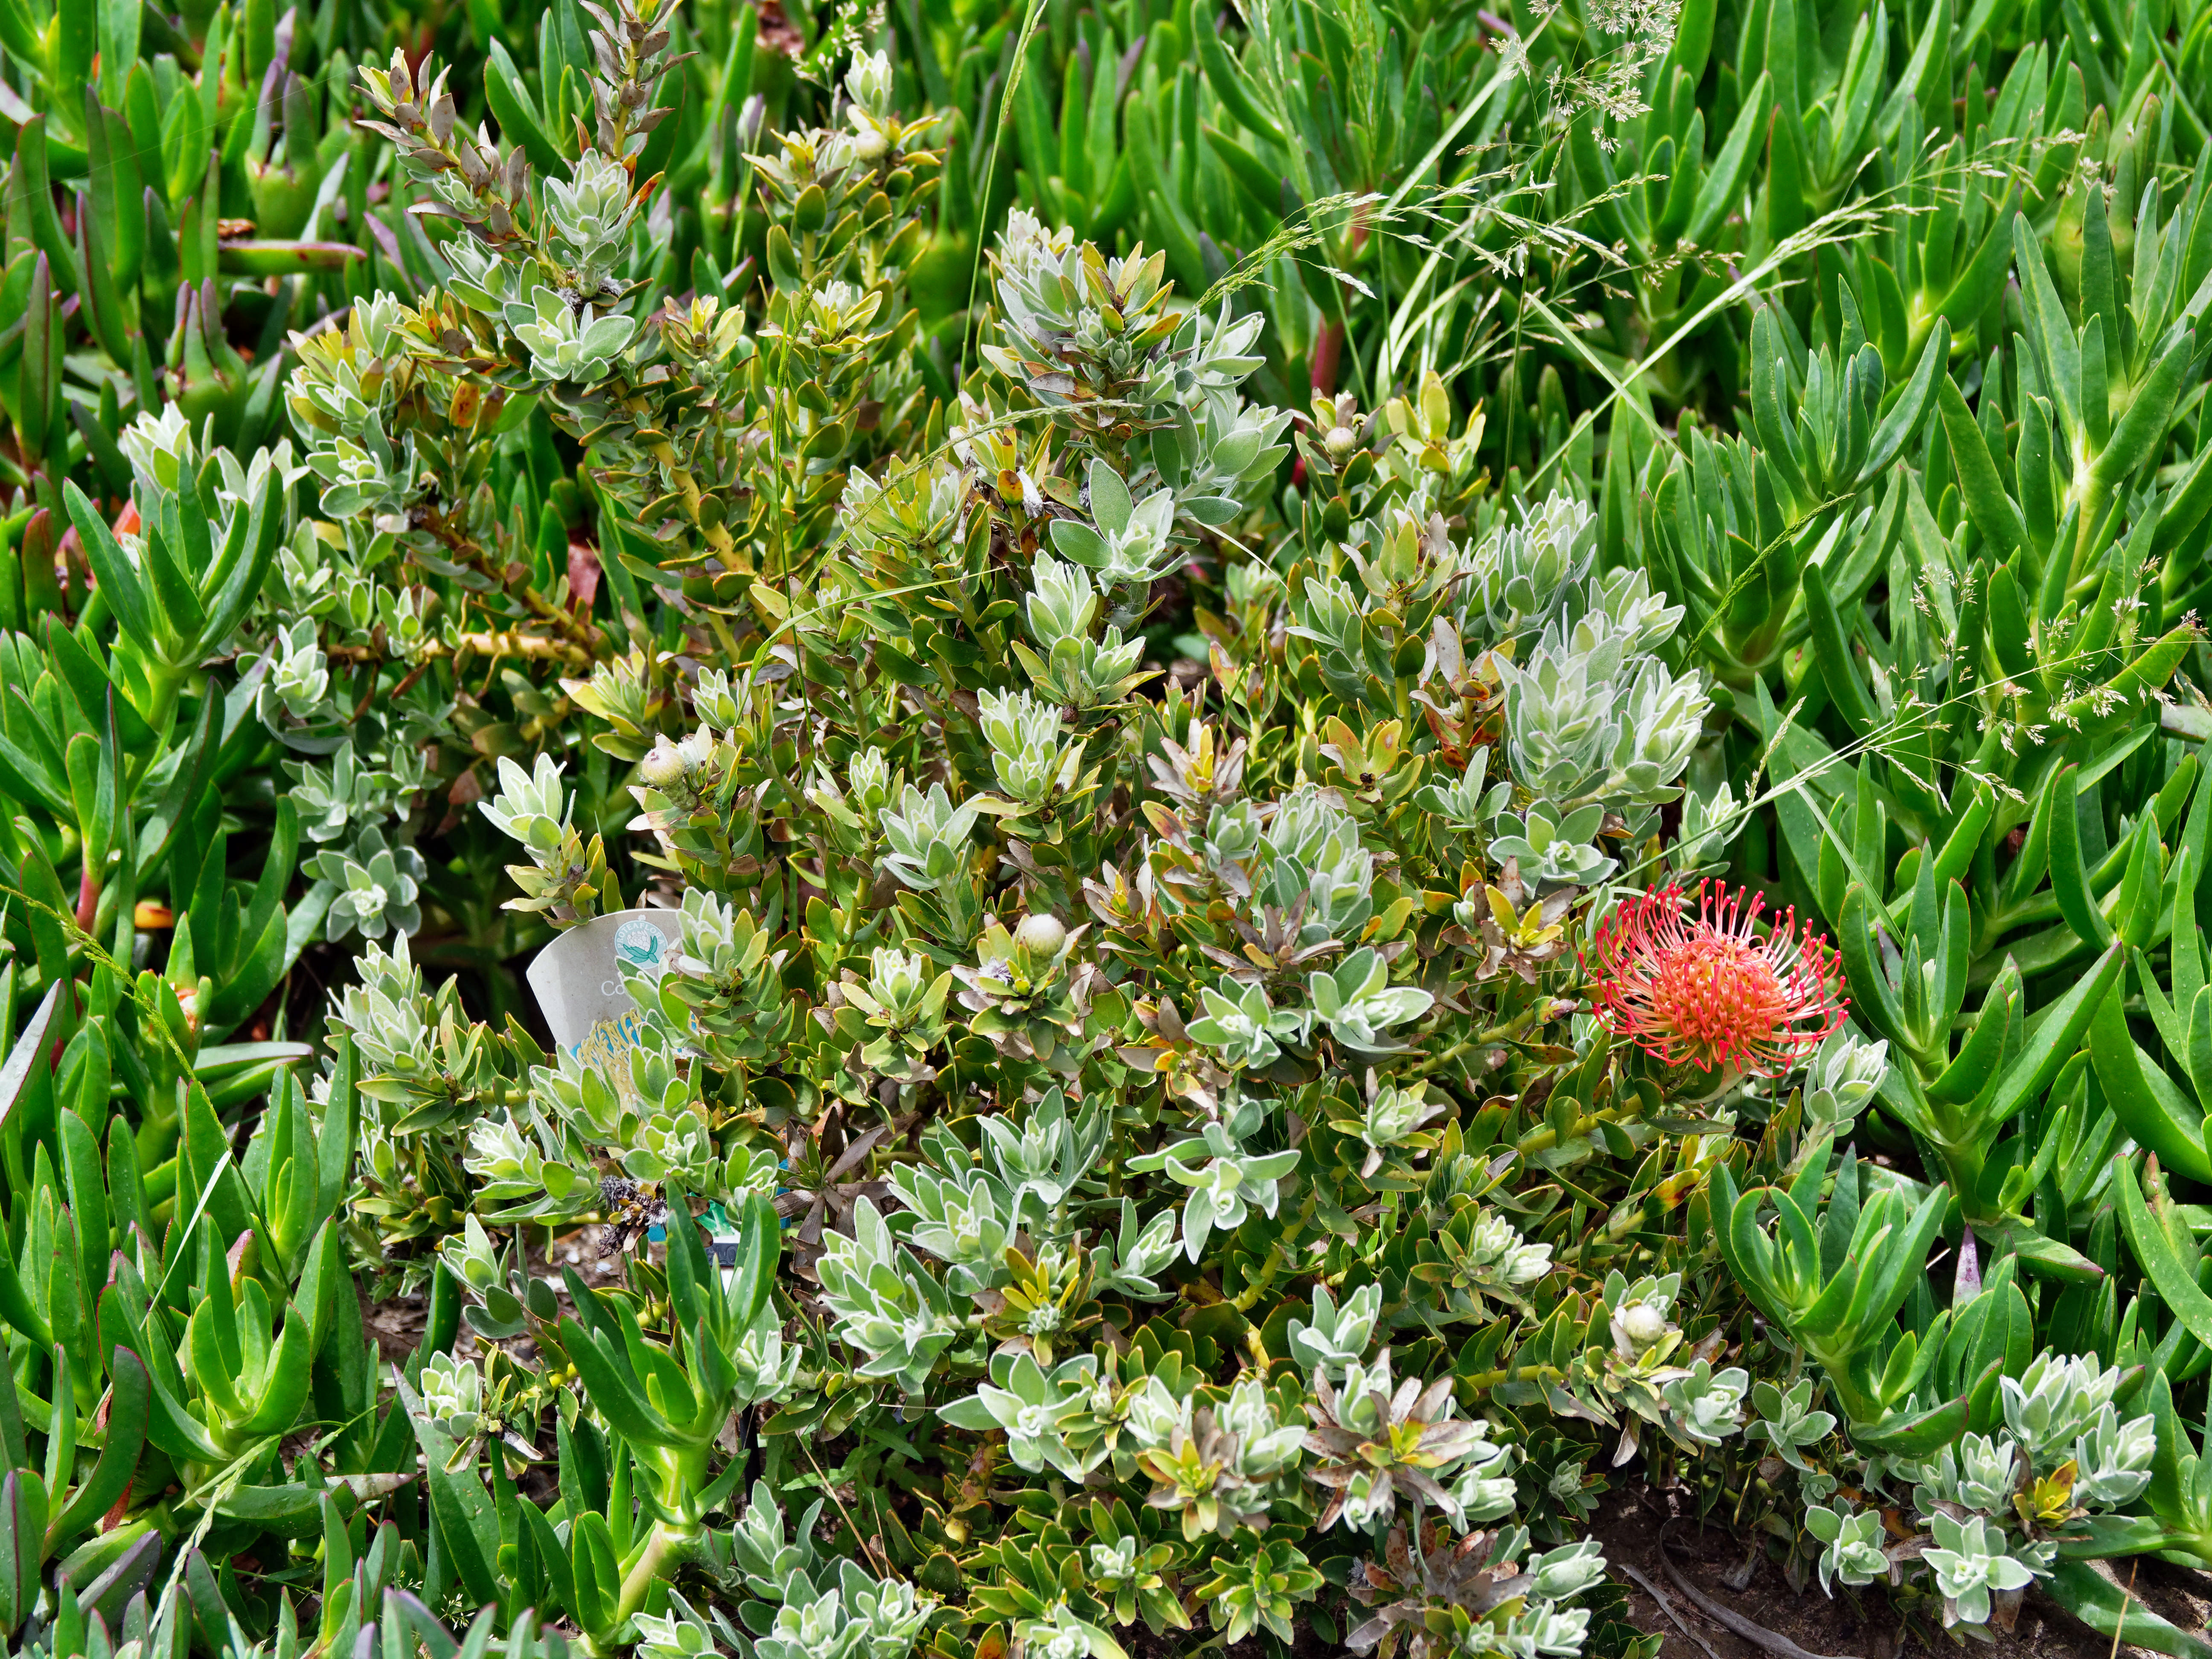 This should be Leucospermum-1.jpeg.  Is it missing?